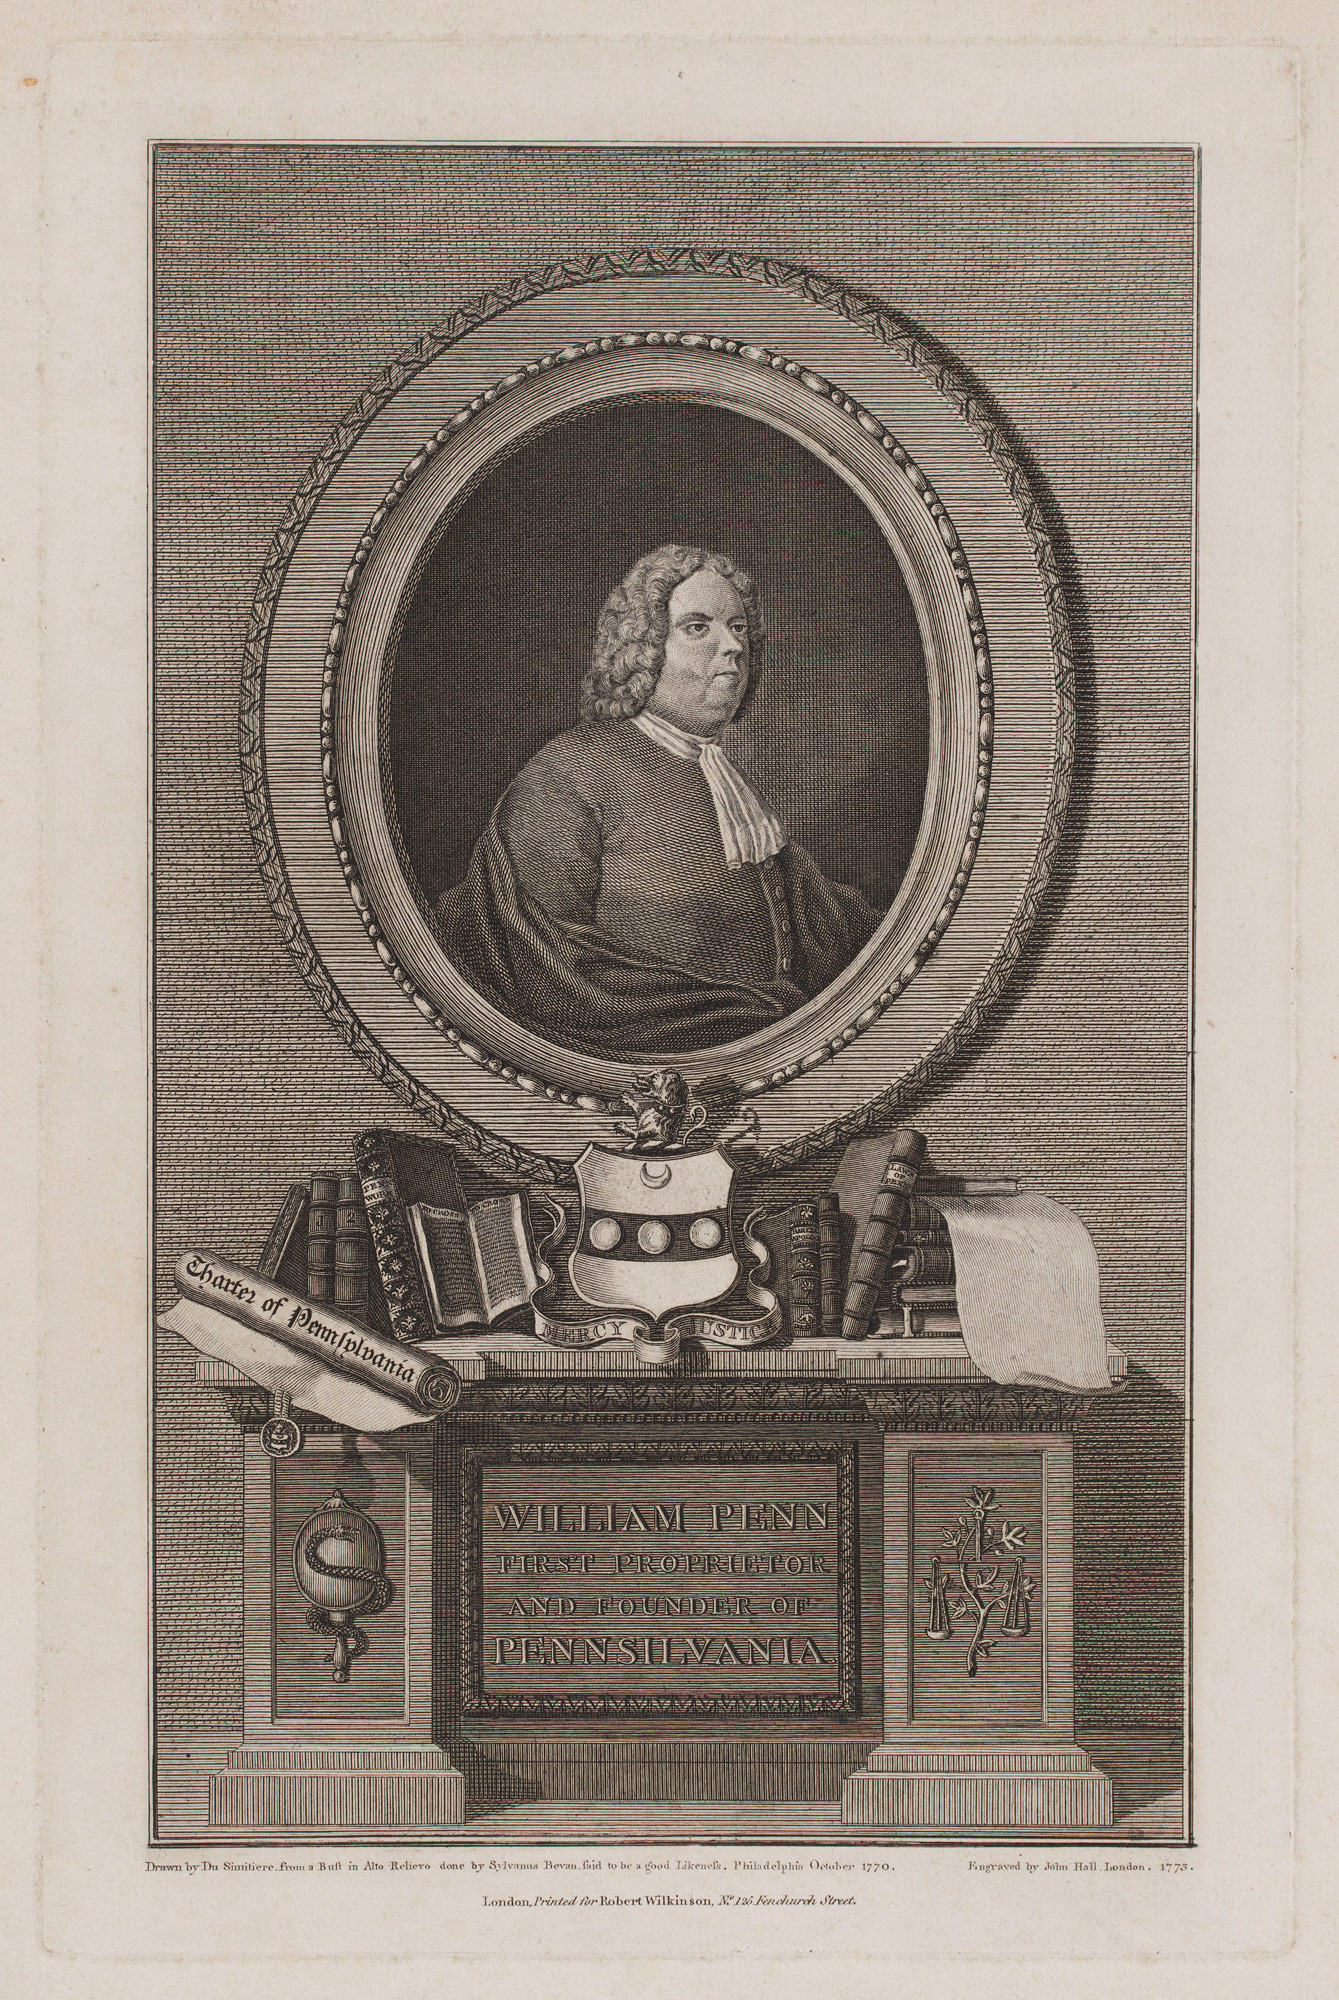 Engraving of William Penn